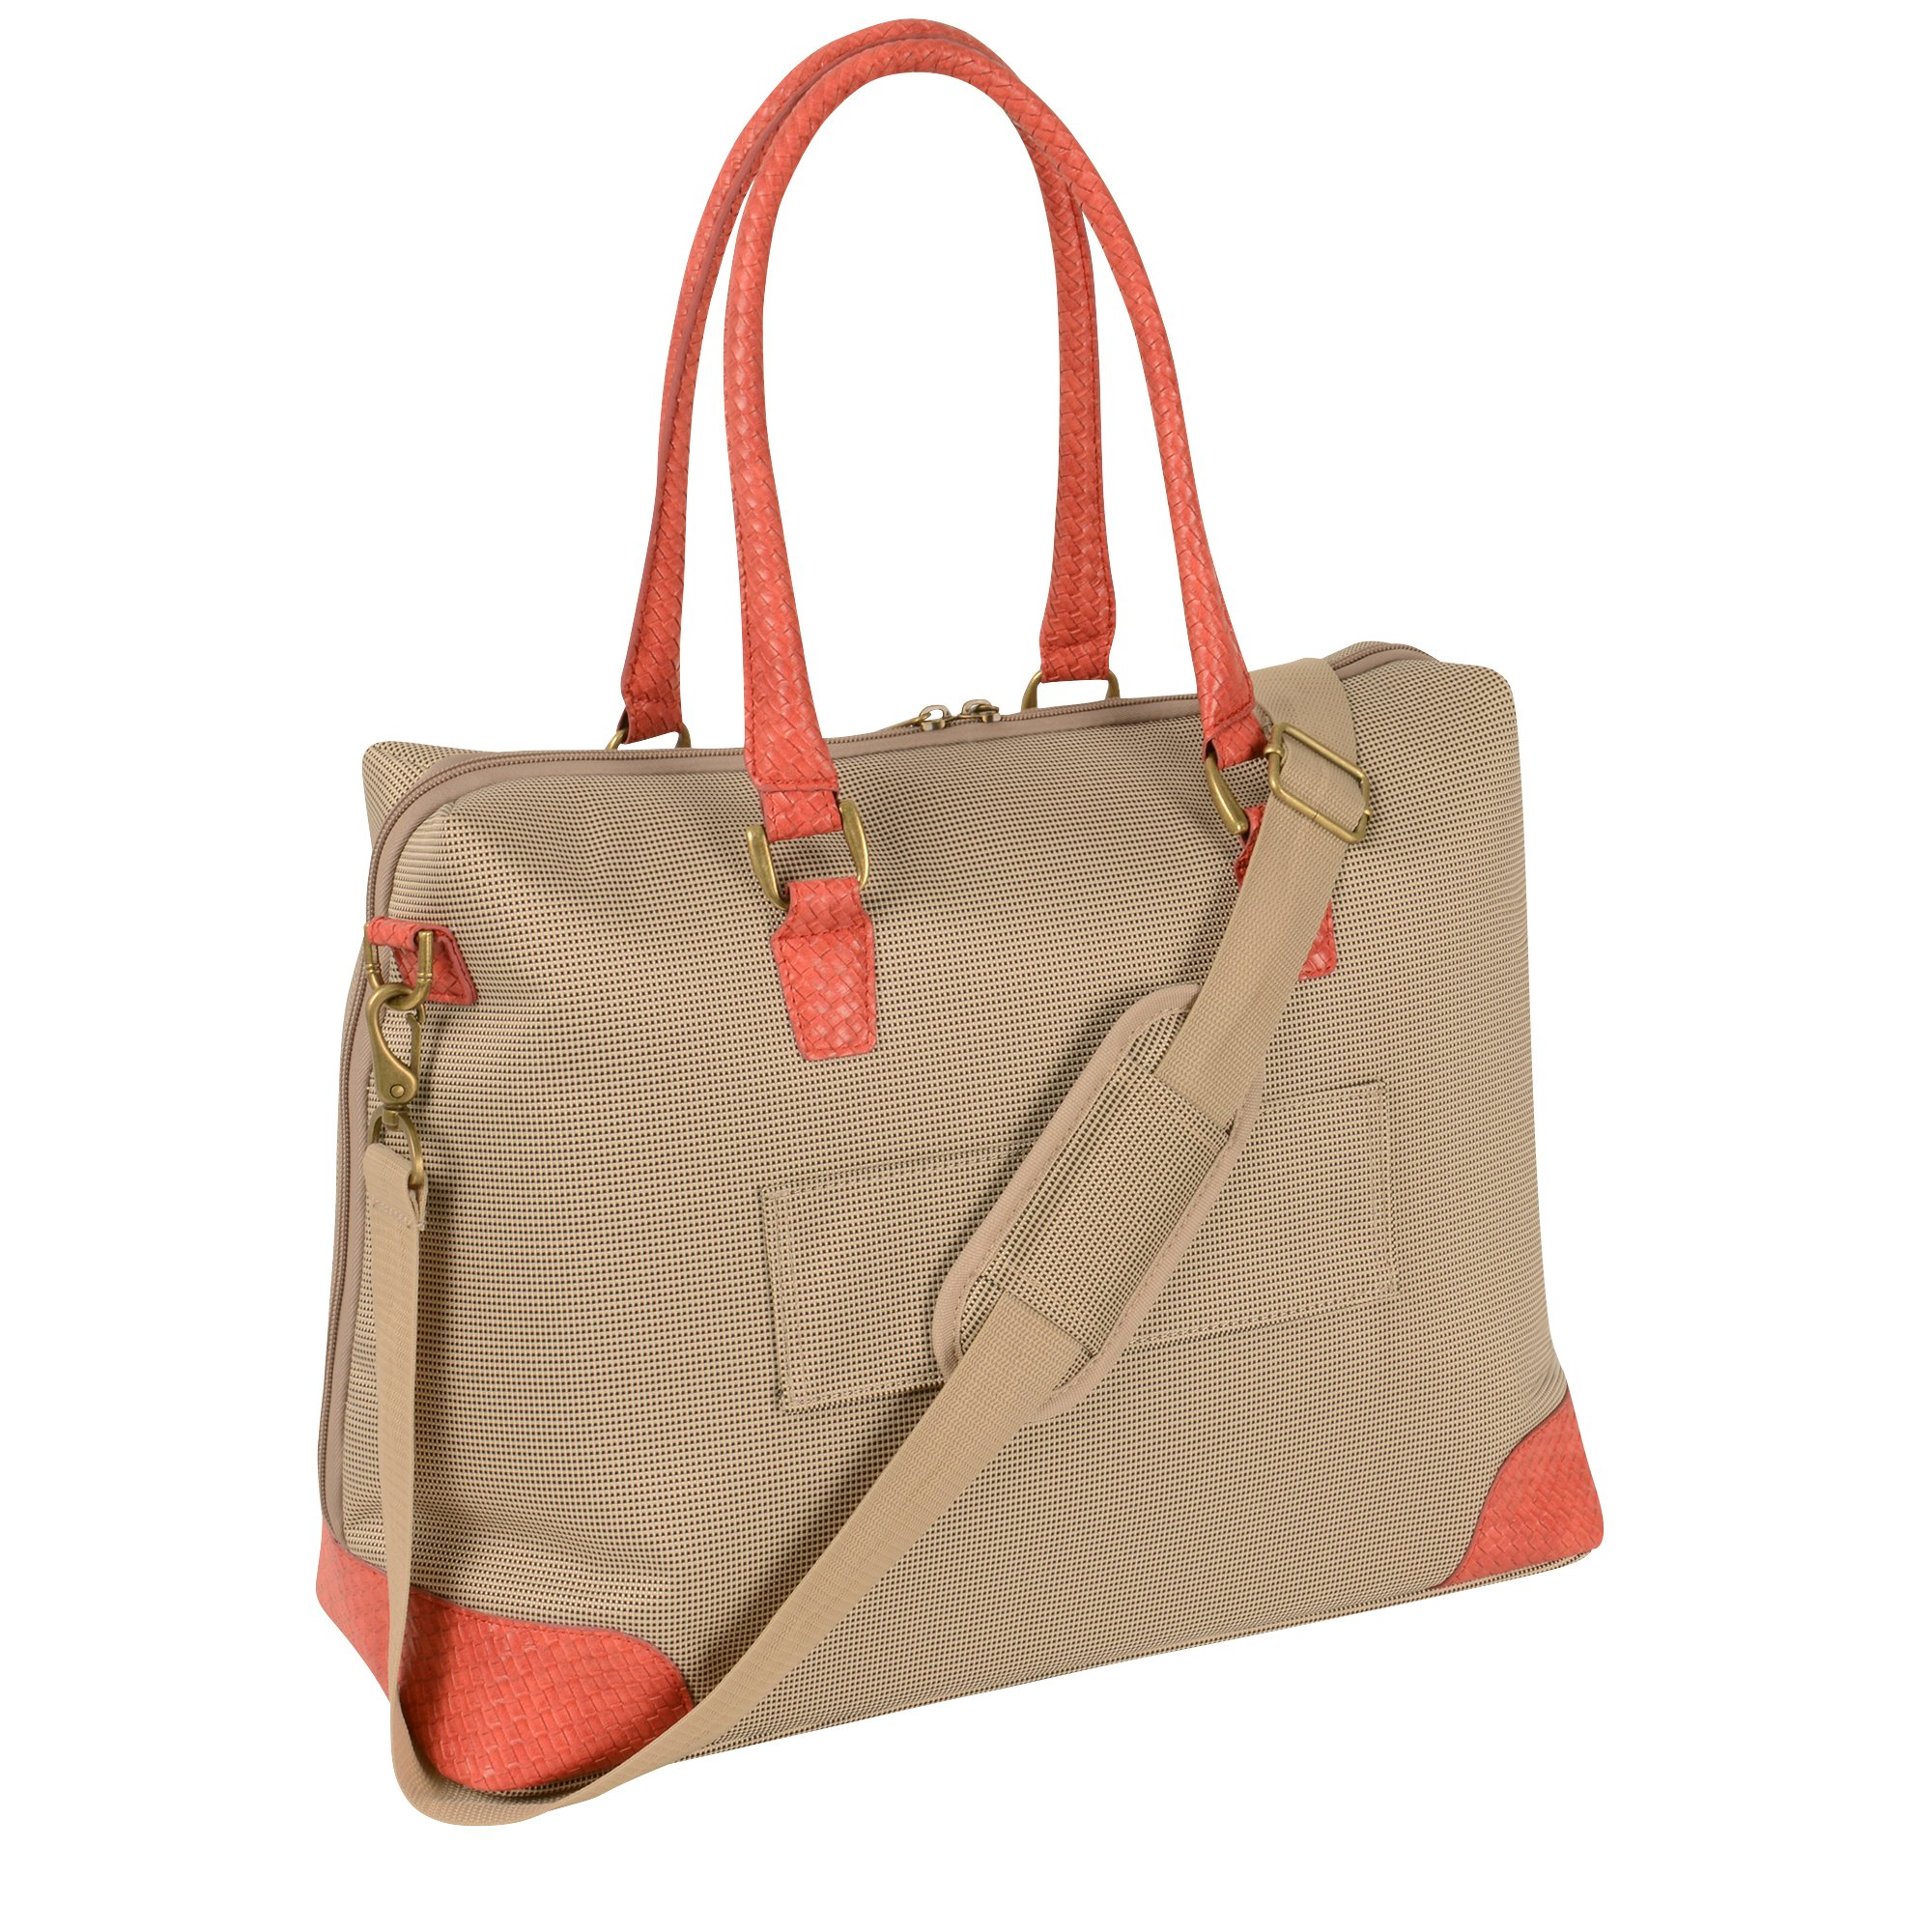 Tommy Bahama Belle Of The Beach 18.5 Boarding Bag, Champagne/Coral, One Size